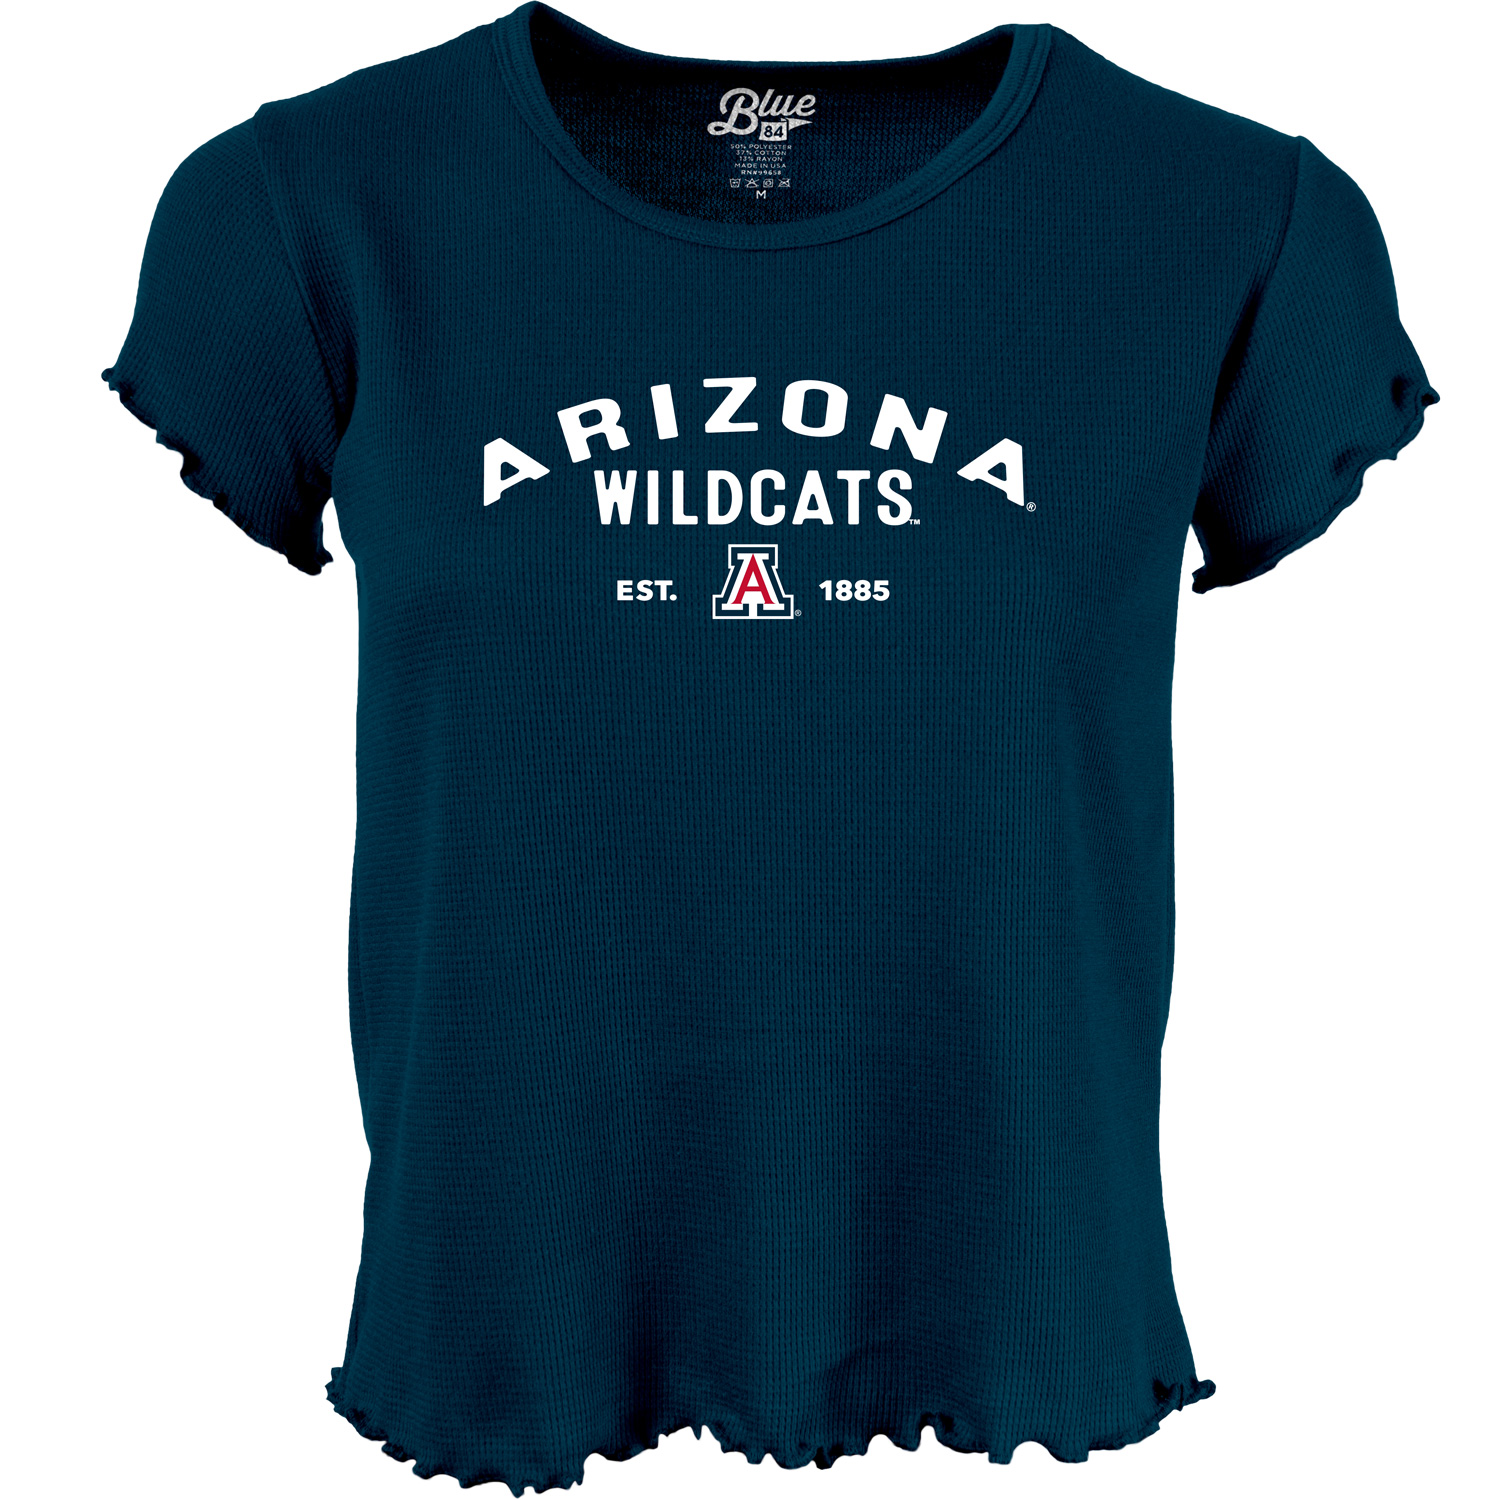 Image For Blue 84: Arizona Wildcats EST. 1885 Women's Lettuce Edge Tee